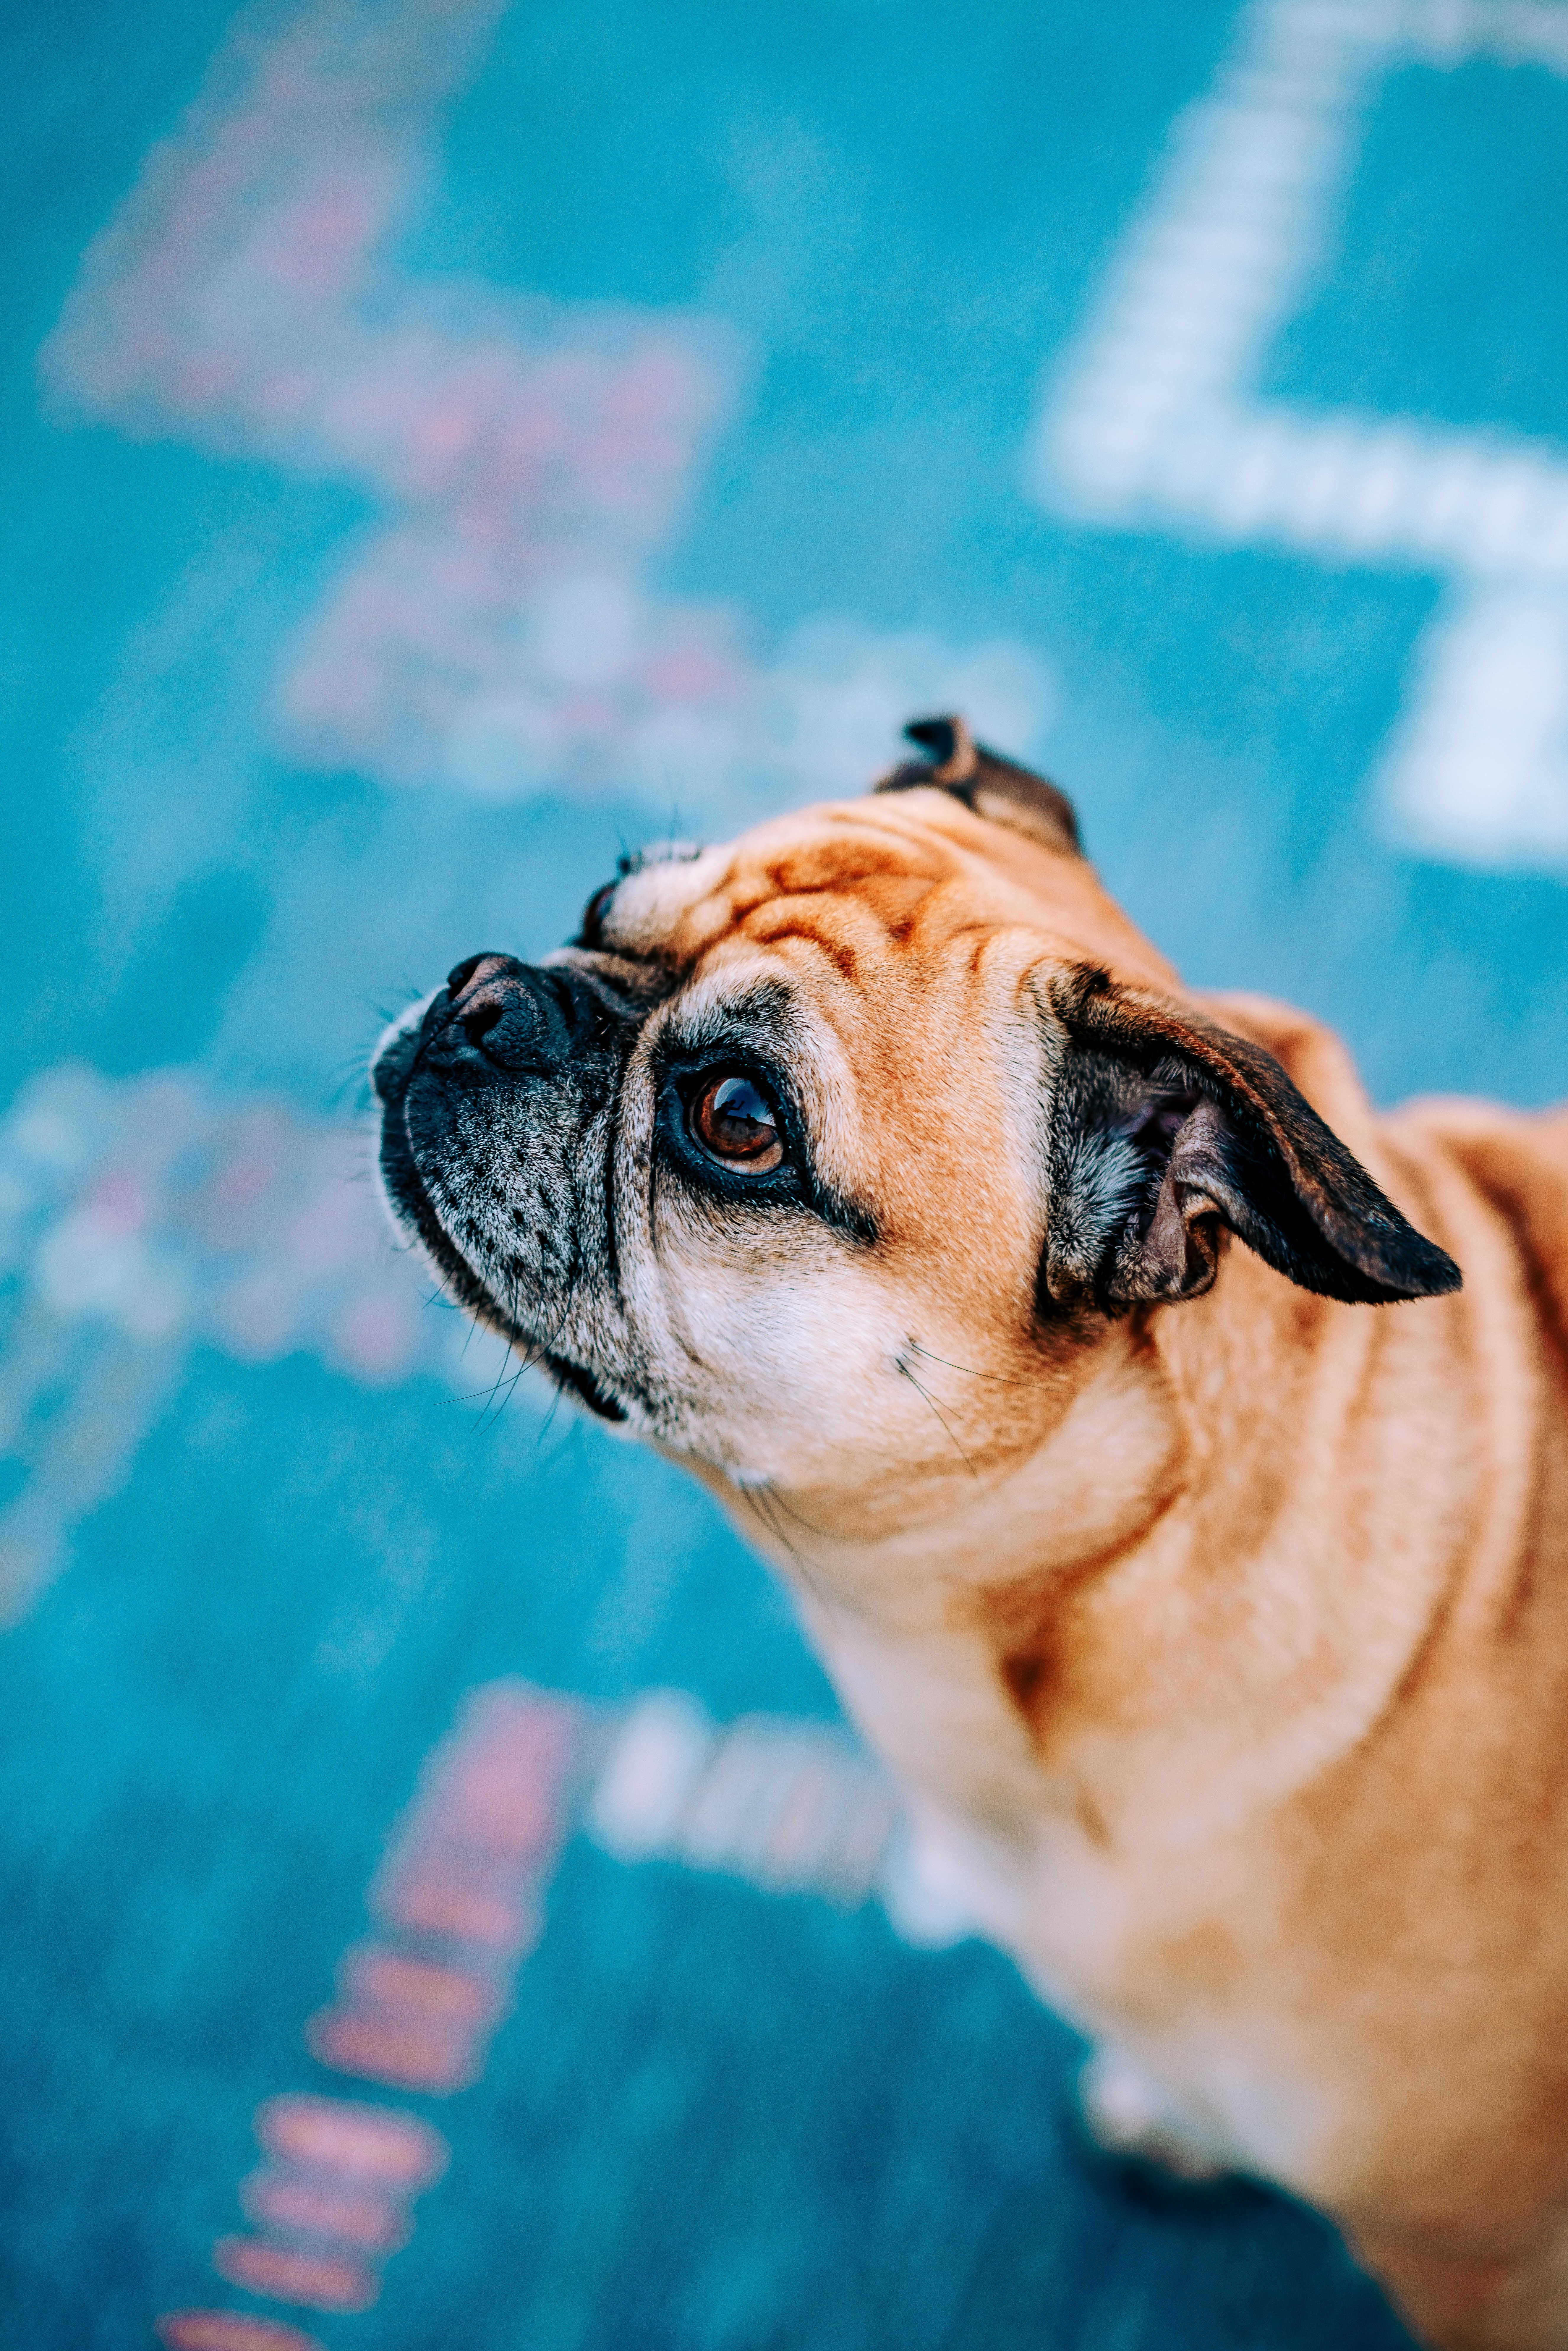 83980 download wallpaper Animals, Pug, Dog, Sight, Opinion, Profile screensavers and pictures for free